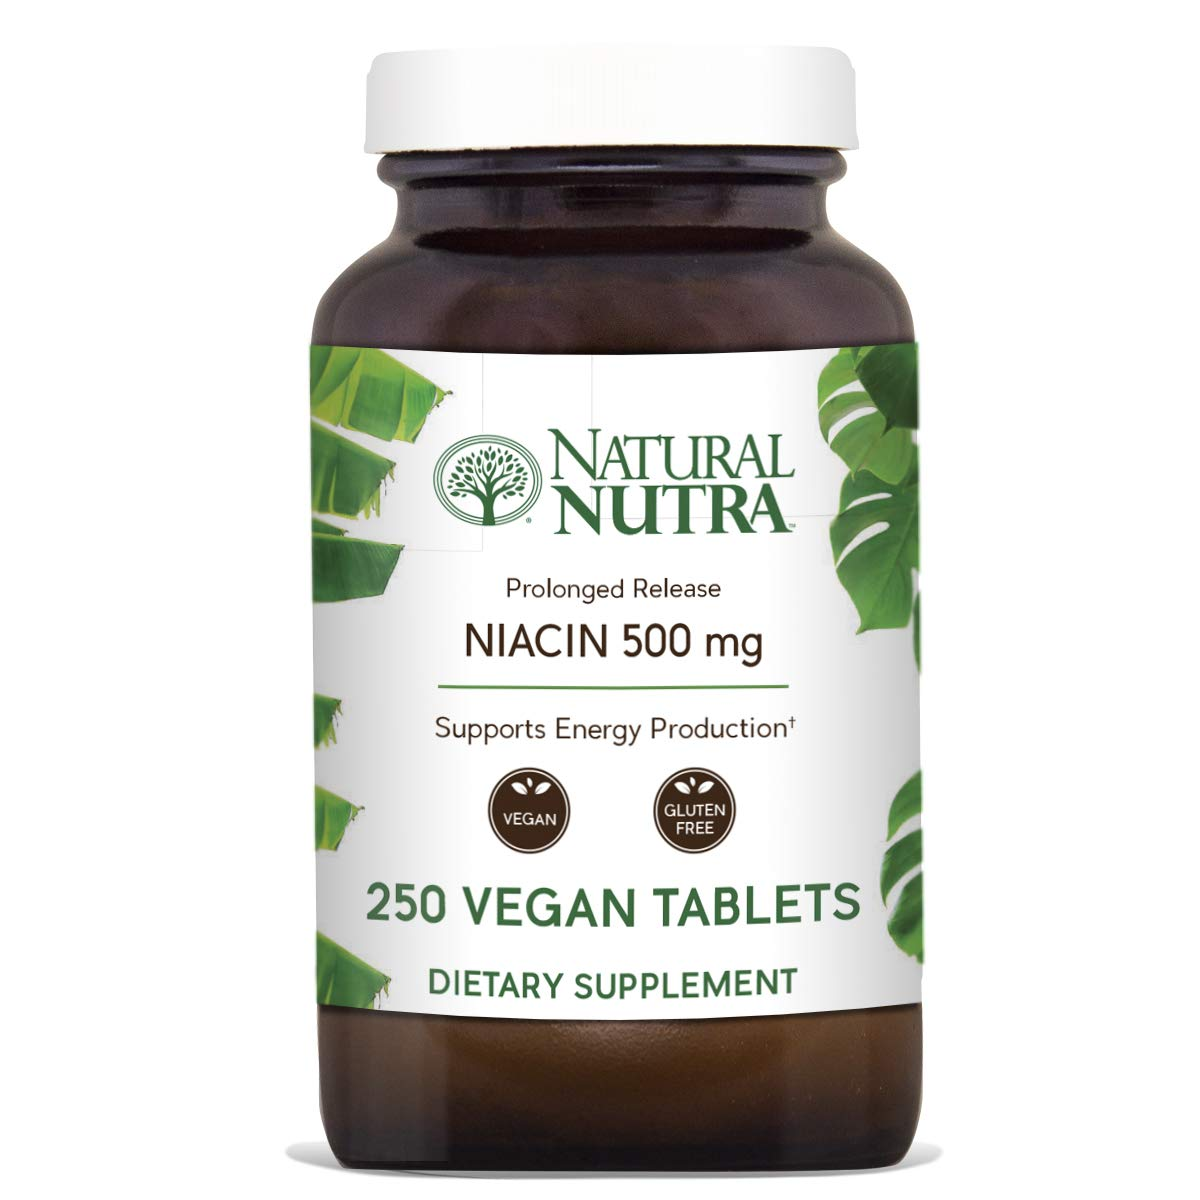 Natural Nutra Time-Release Niacin 500mg (Vitamin B3) with Nicotinic Acid, Cholesterol Supplement, 250 Vegan and Vegetarian Tablets